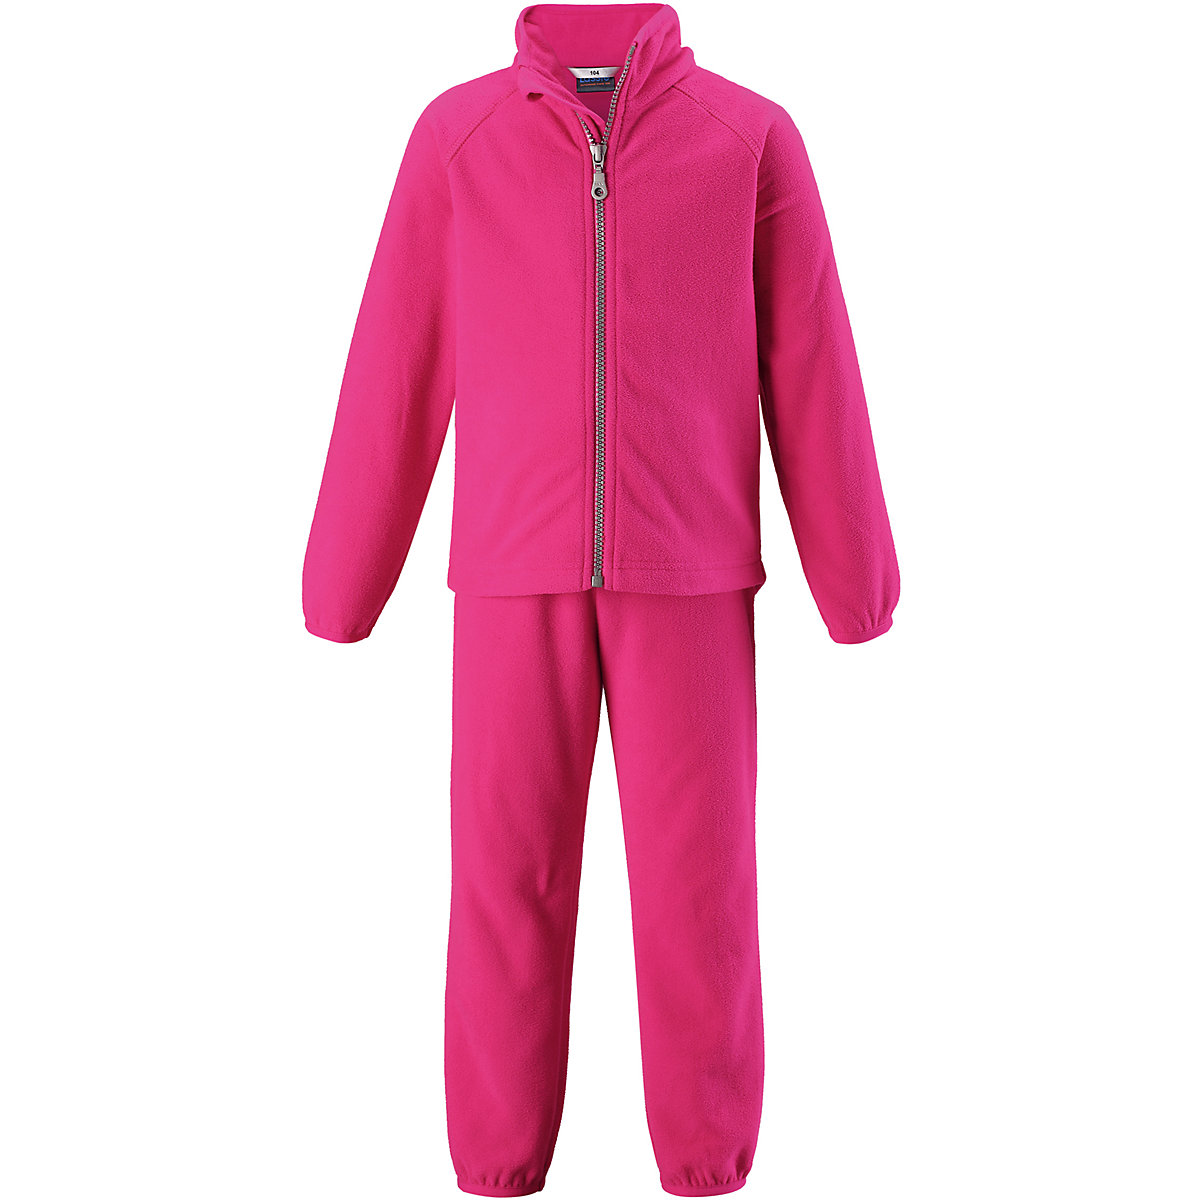 Children's Sets LASSIE for girls 8628912 Winter Track Suit Kids Children clothes Warm children s sets lassie for girls 8631960 winter track suit kids children clothes warm